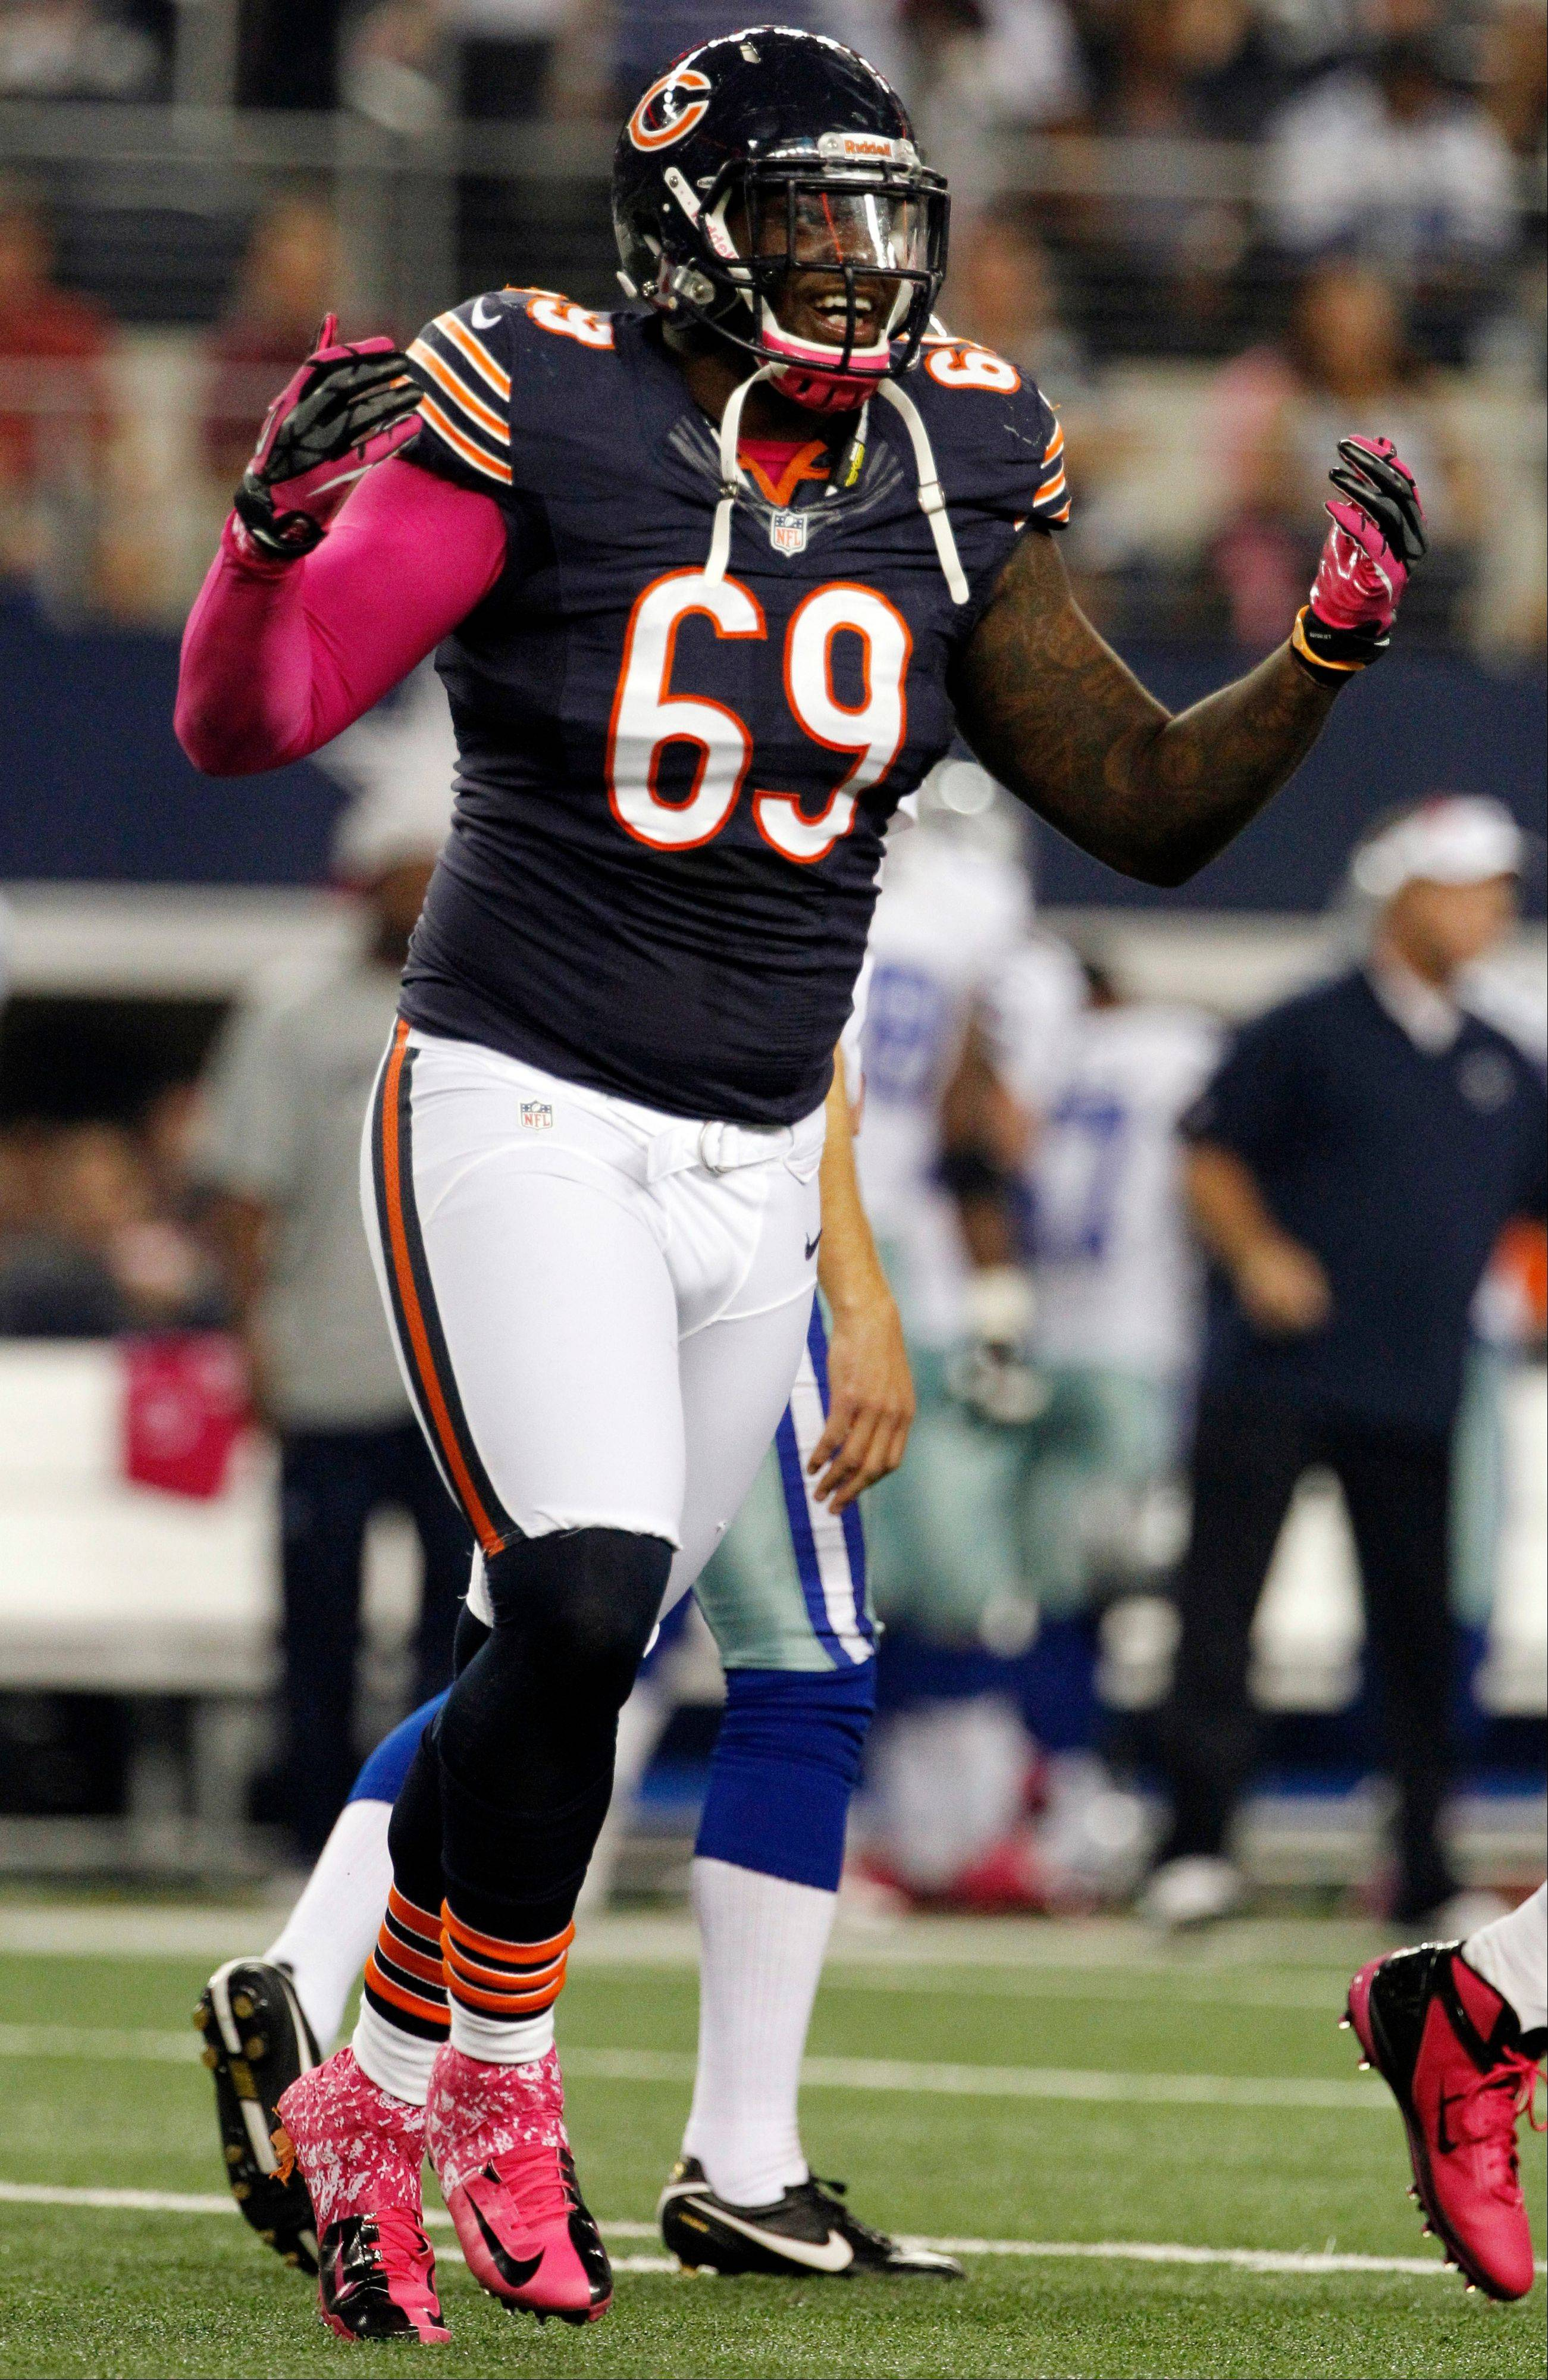 Chicago Bears defensive tackle Henry Melton celebrates after sacking Dallas Cowboys quarterback Tony Romo during the first half.